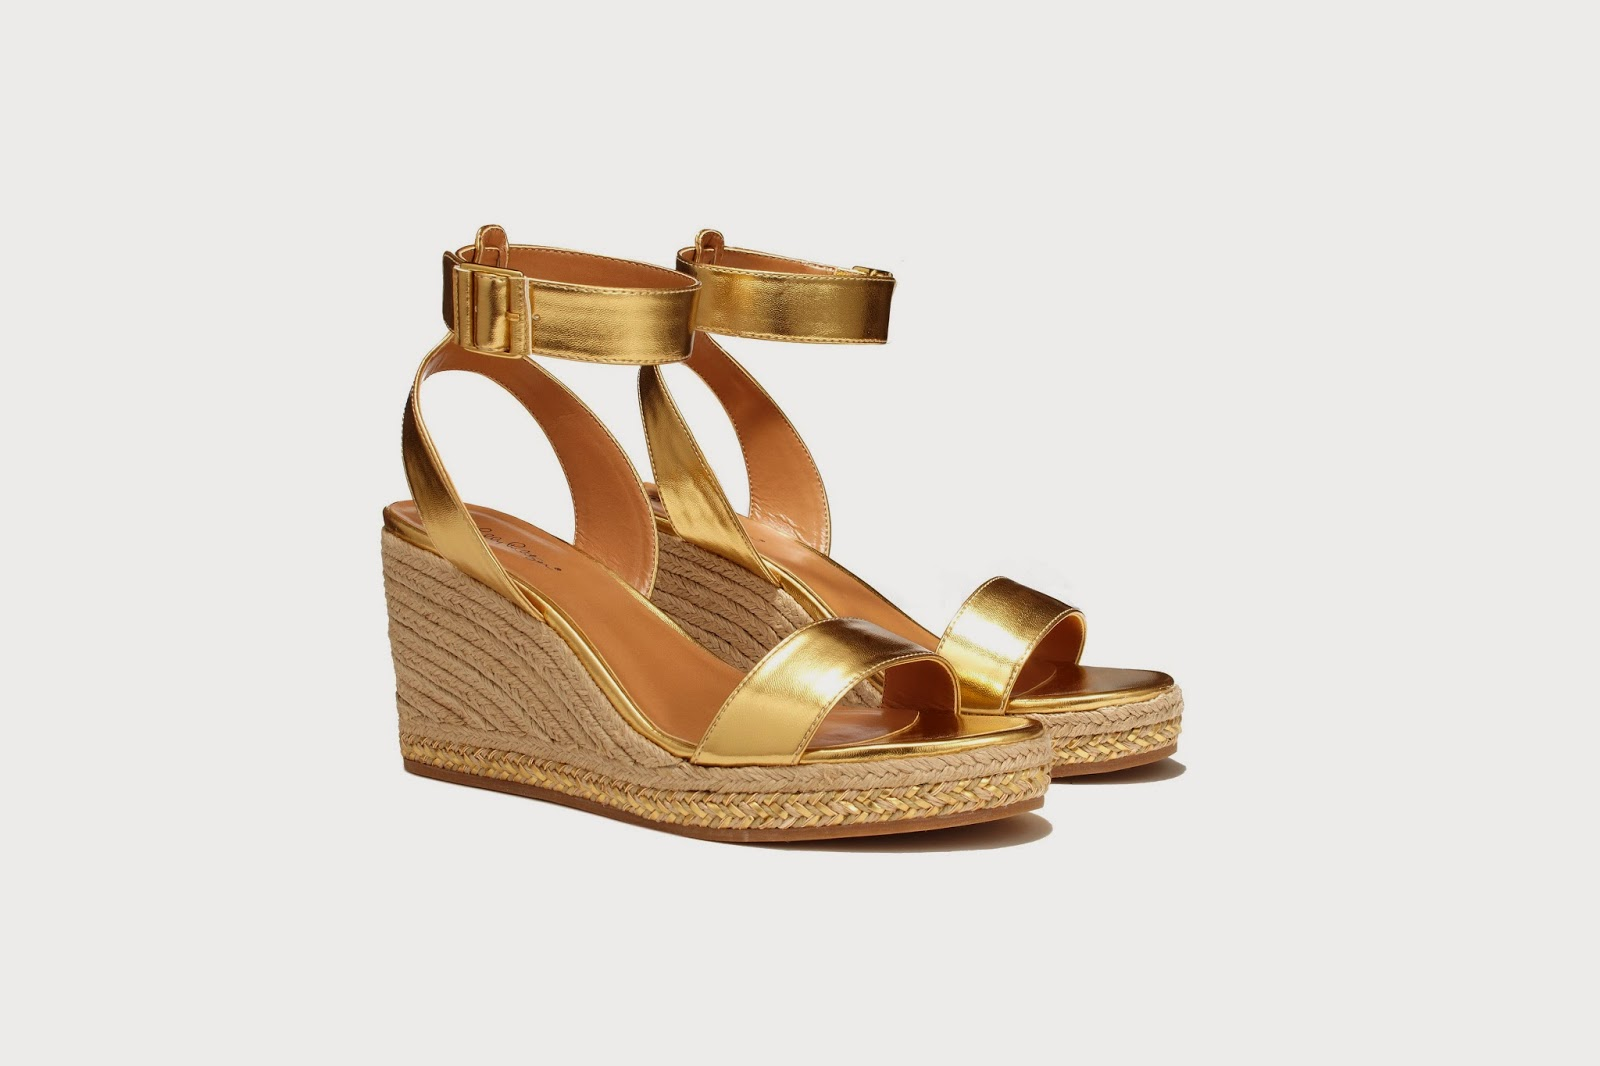 Lilly Pulitzer for Target Gold Wedge Shoes